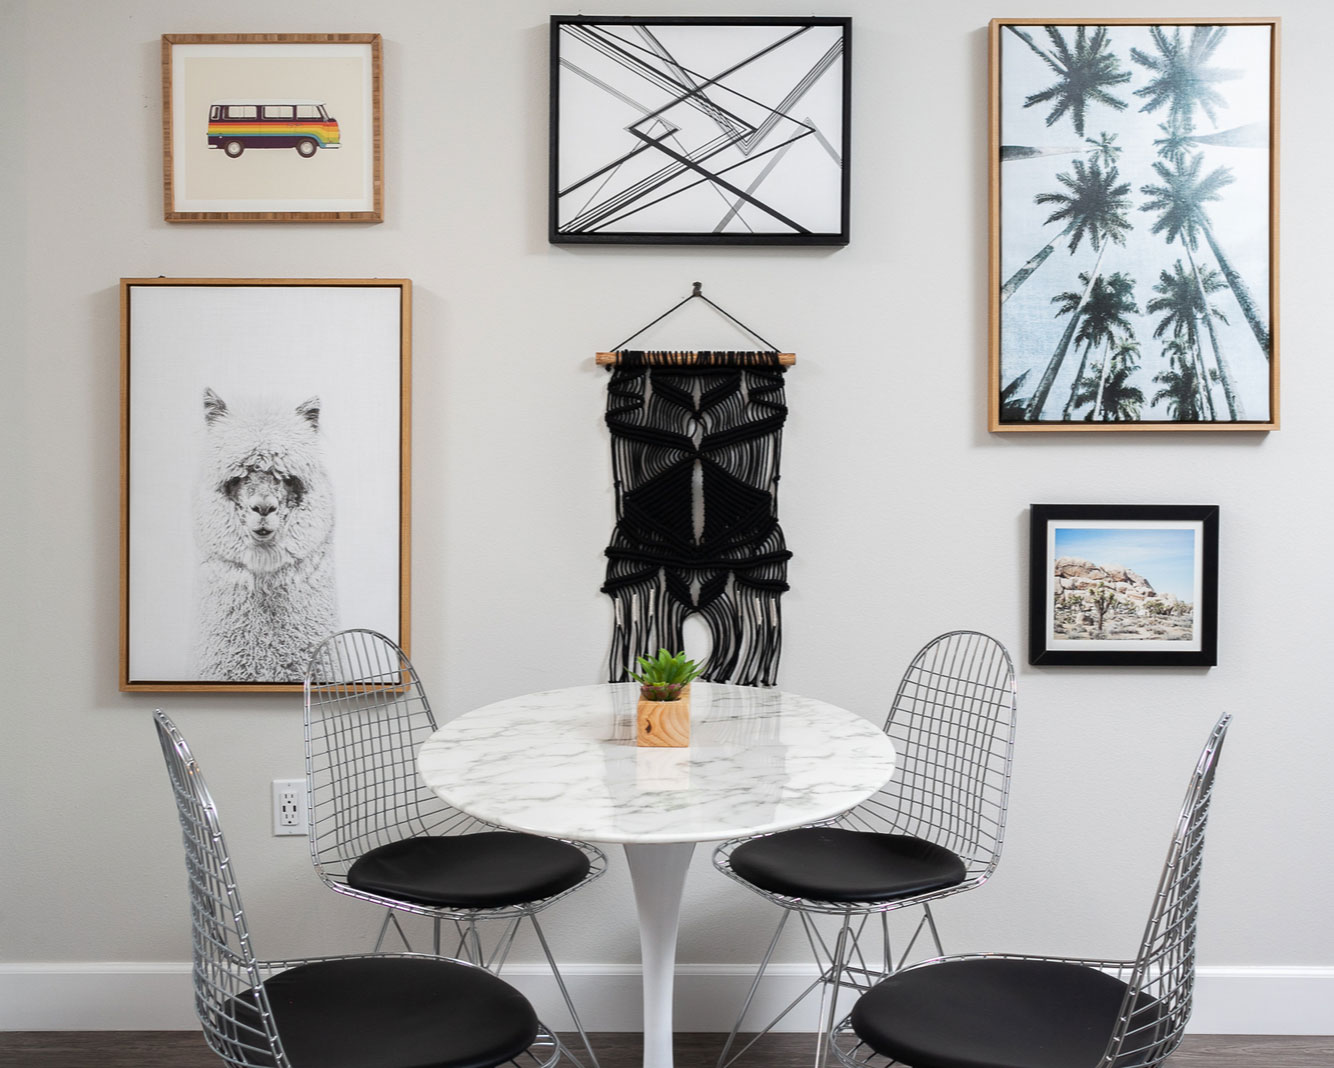 Dining room with round table and four metal chairs and paintings on the wall